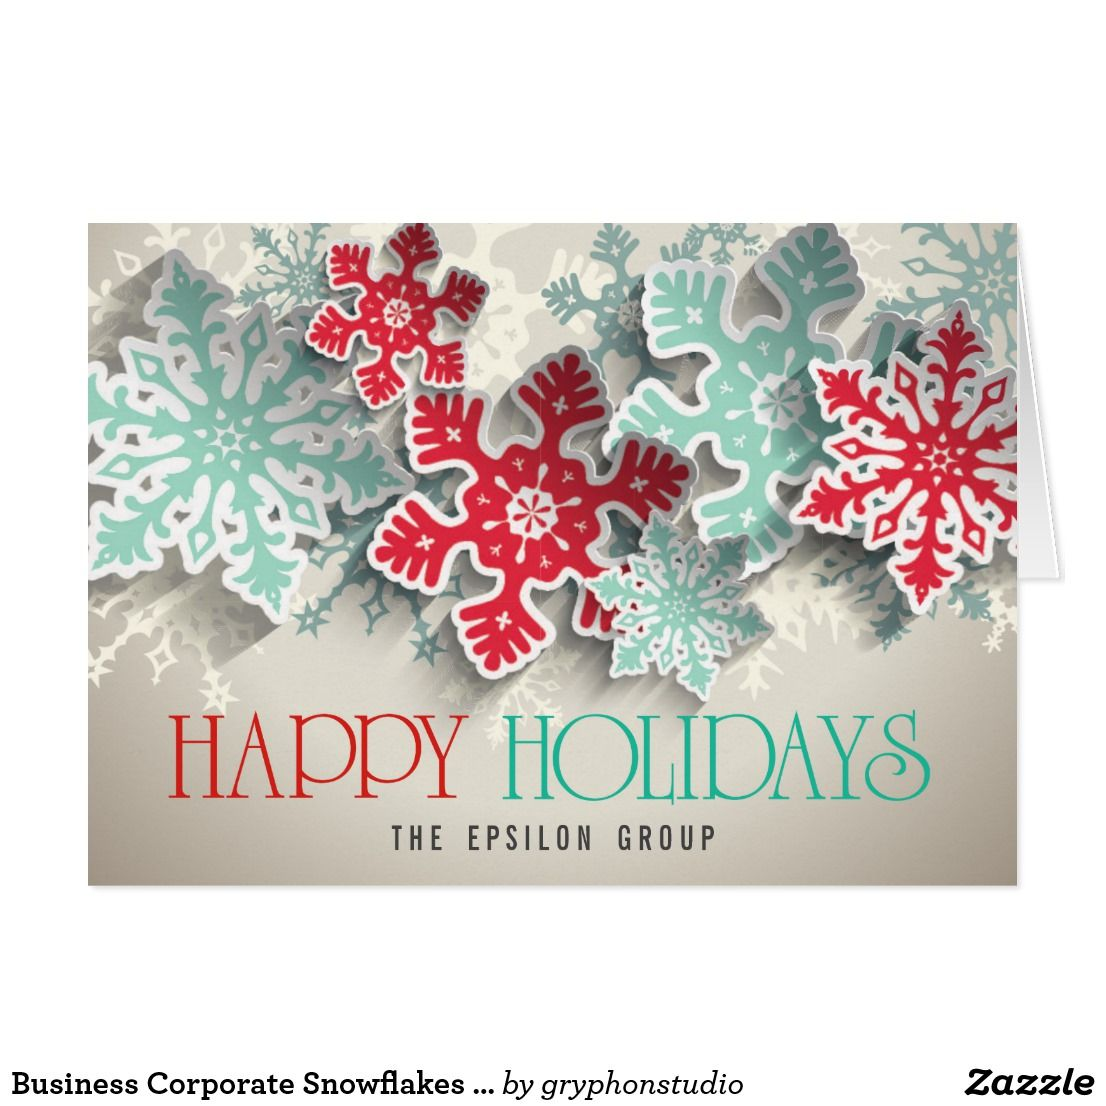 Business Corporate Snowflakes Happy Holidays Card | Christmas Cards ...